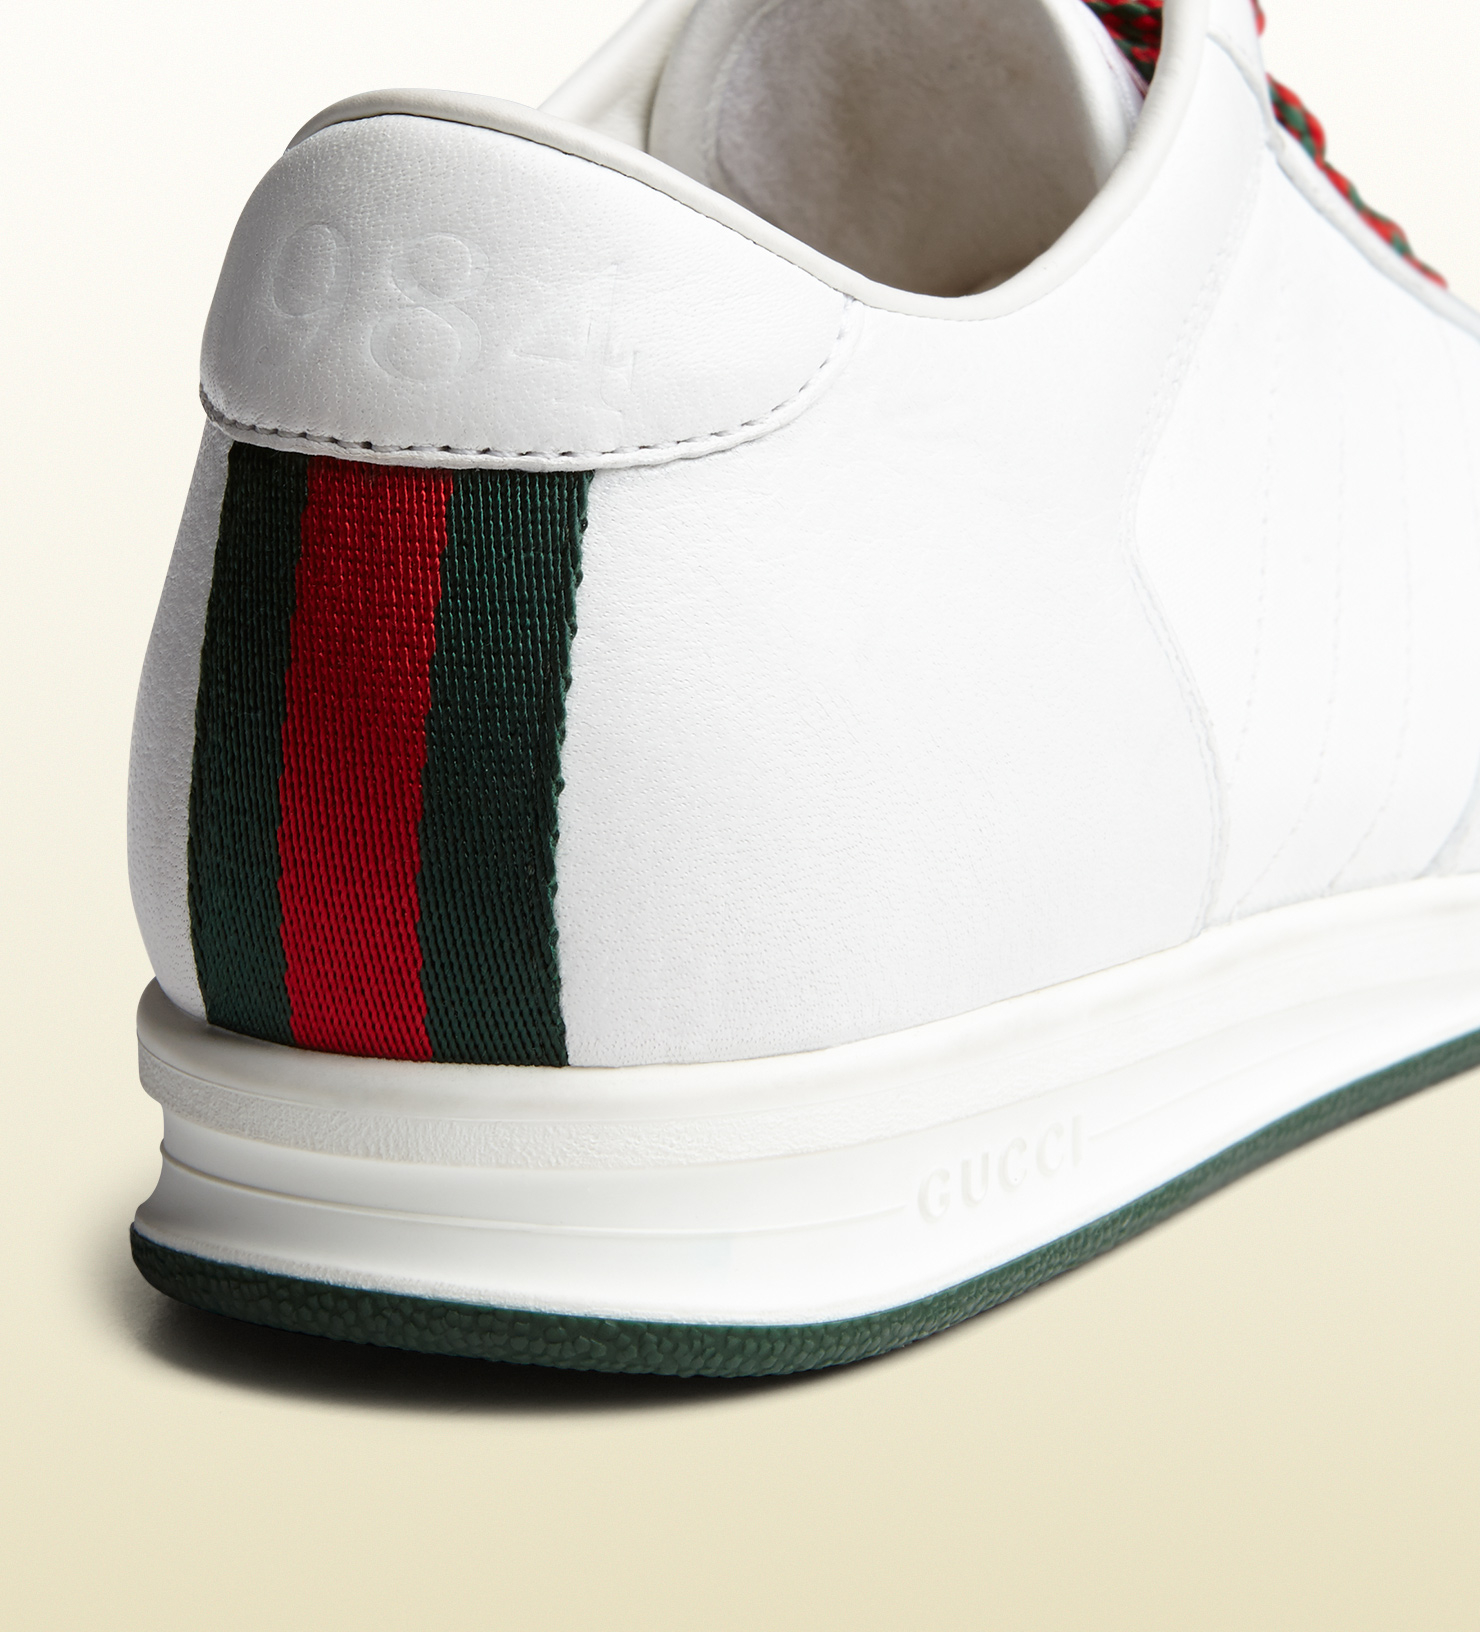 gucci 1984 low top sneaker in leather in white for men lyst